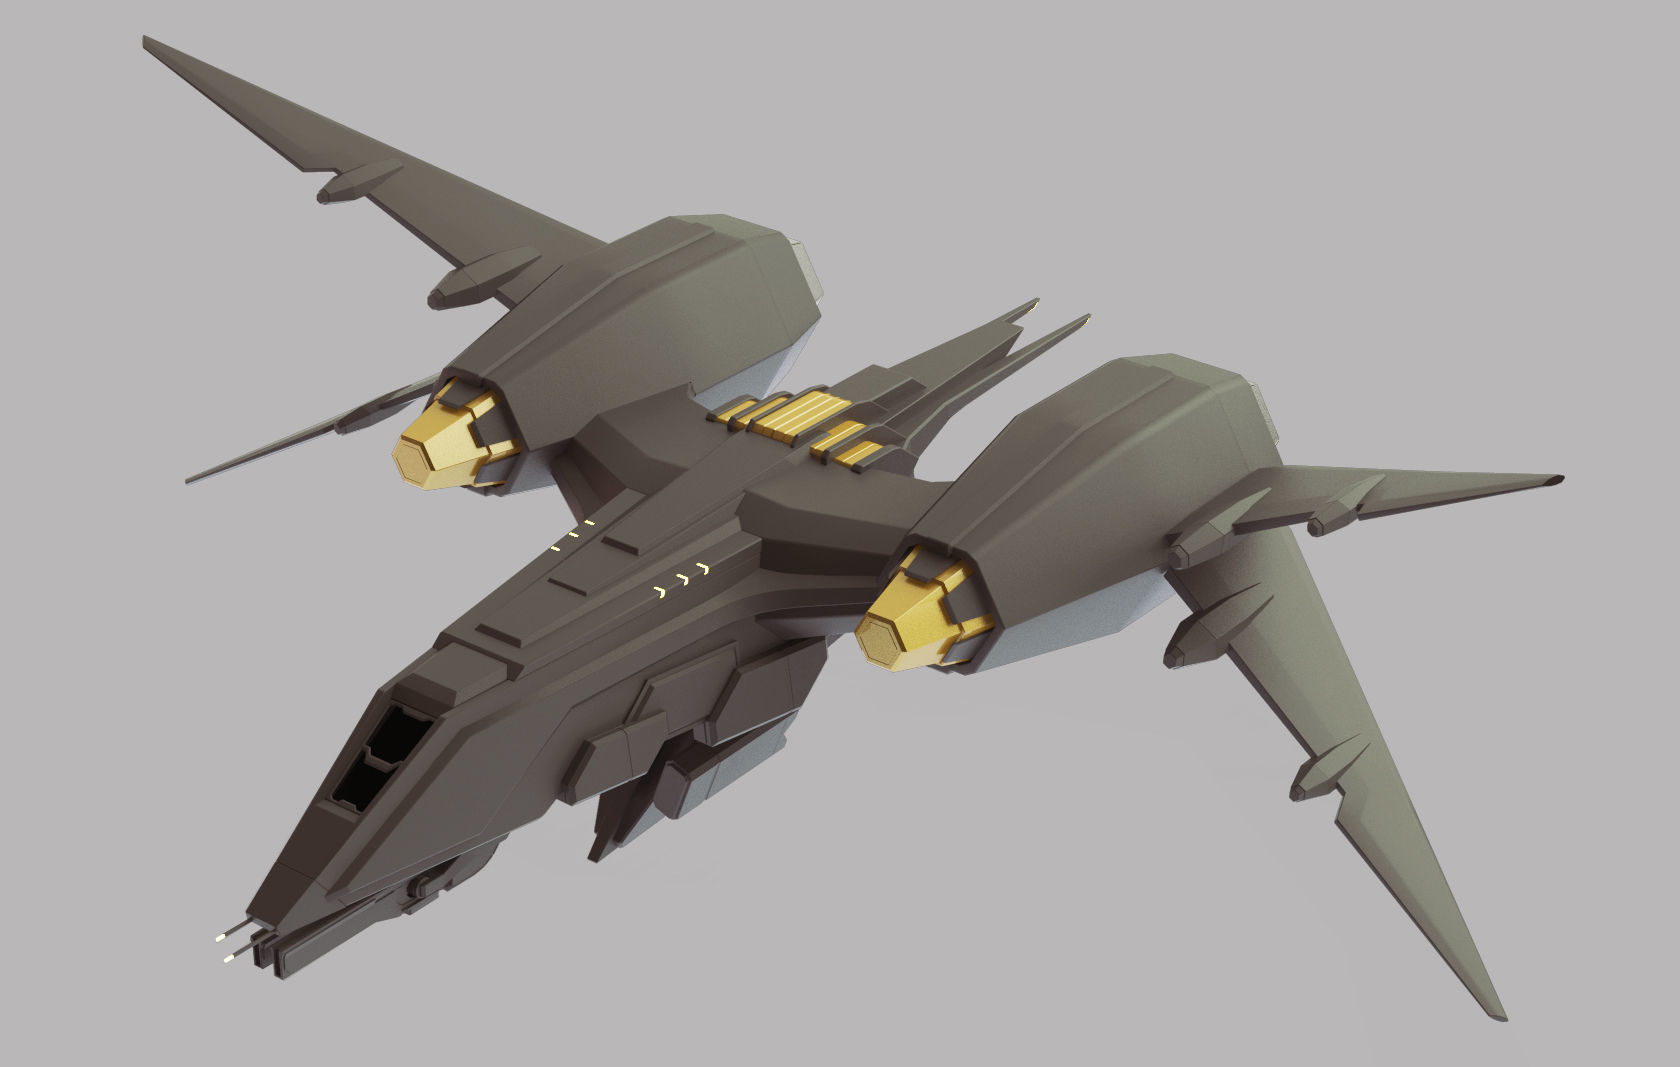 Space Fighter MK 1